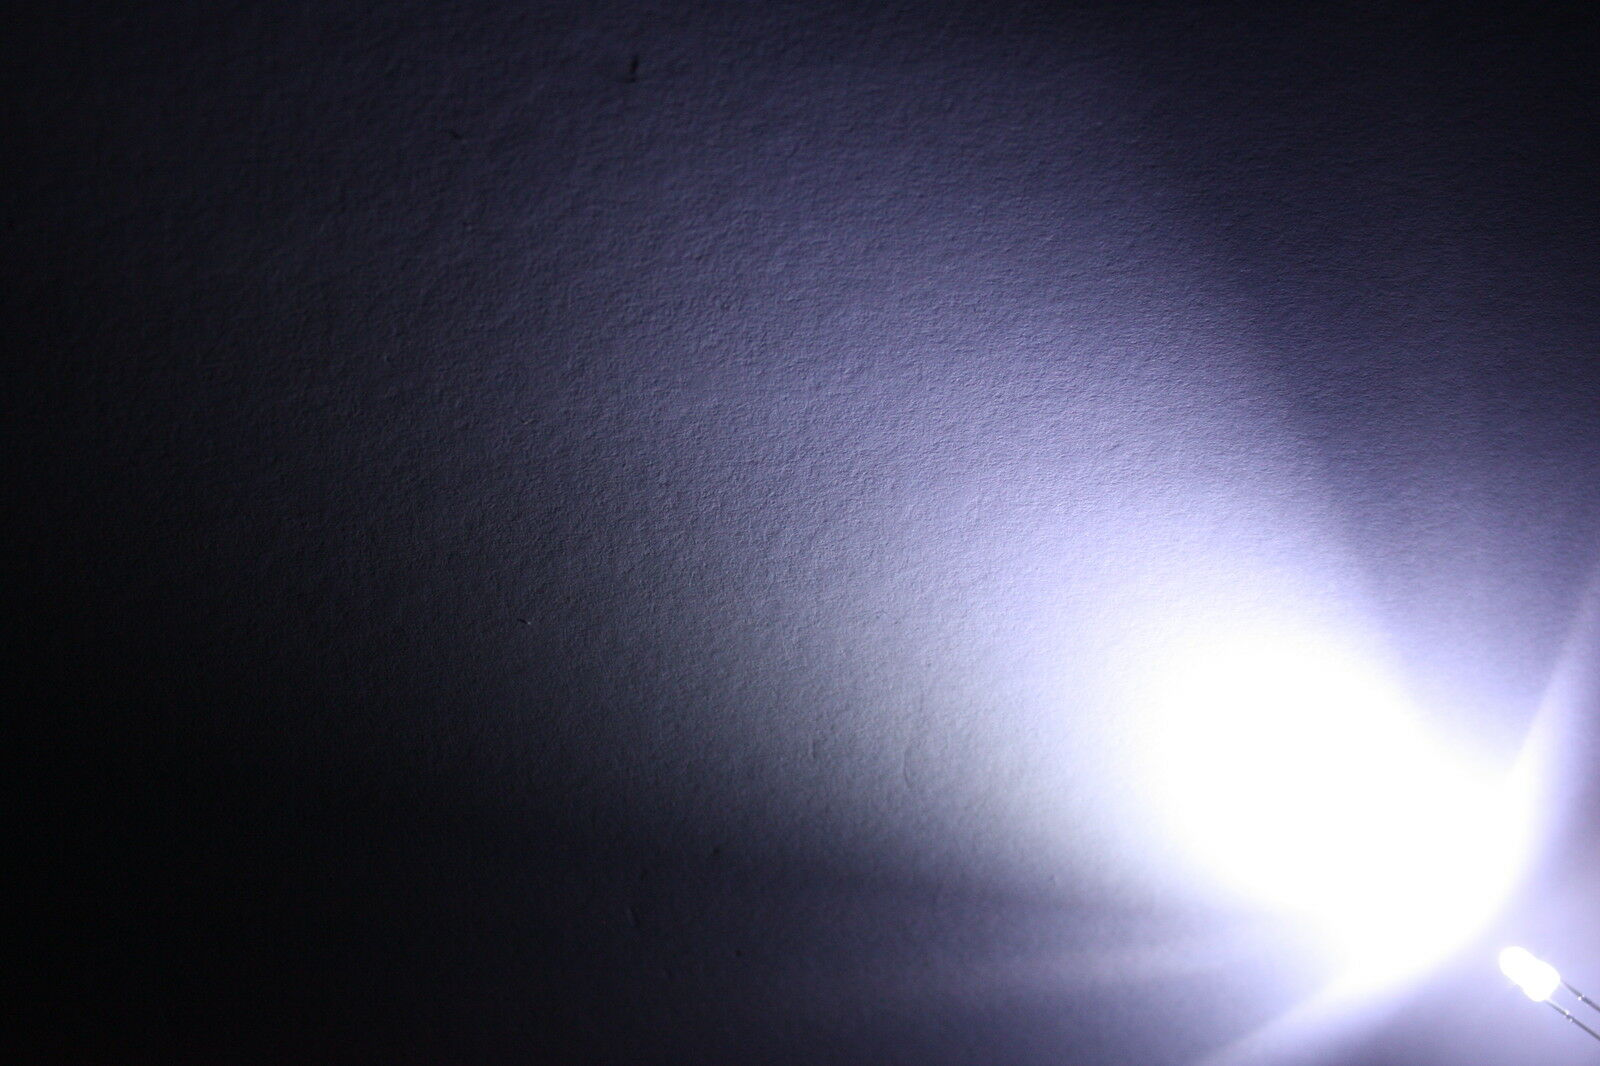 50x 3mm LED rund weiß diffused sehr hell LEDs Widerstände 3mm